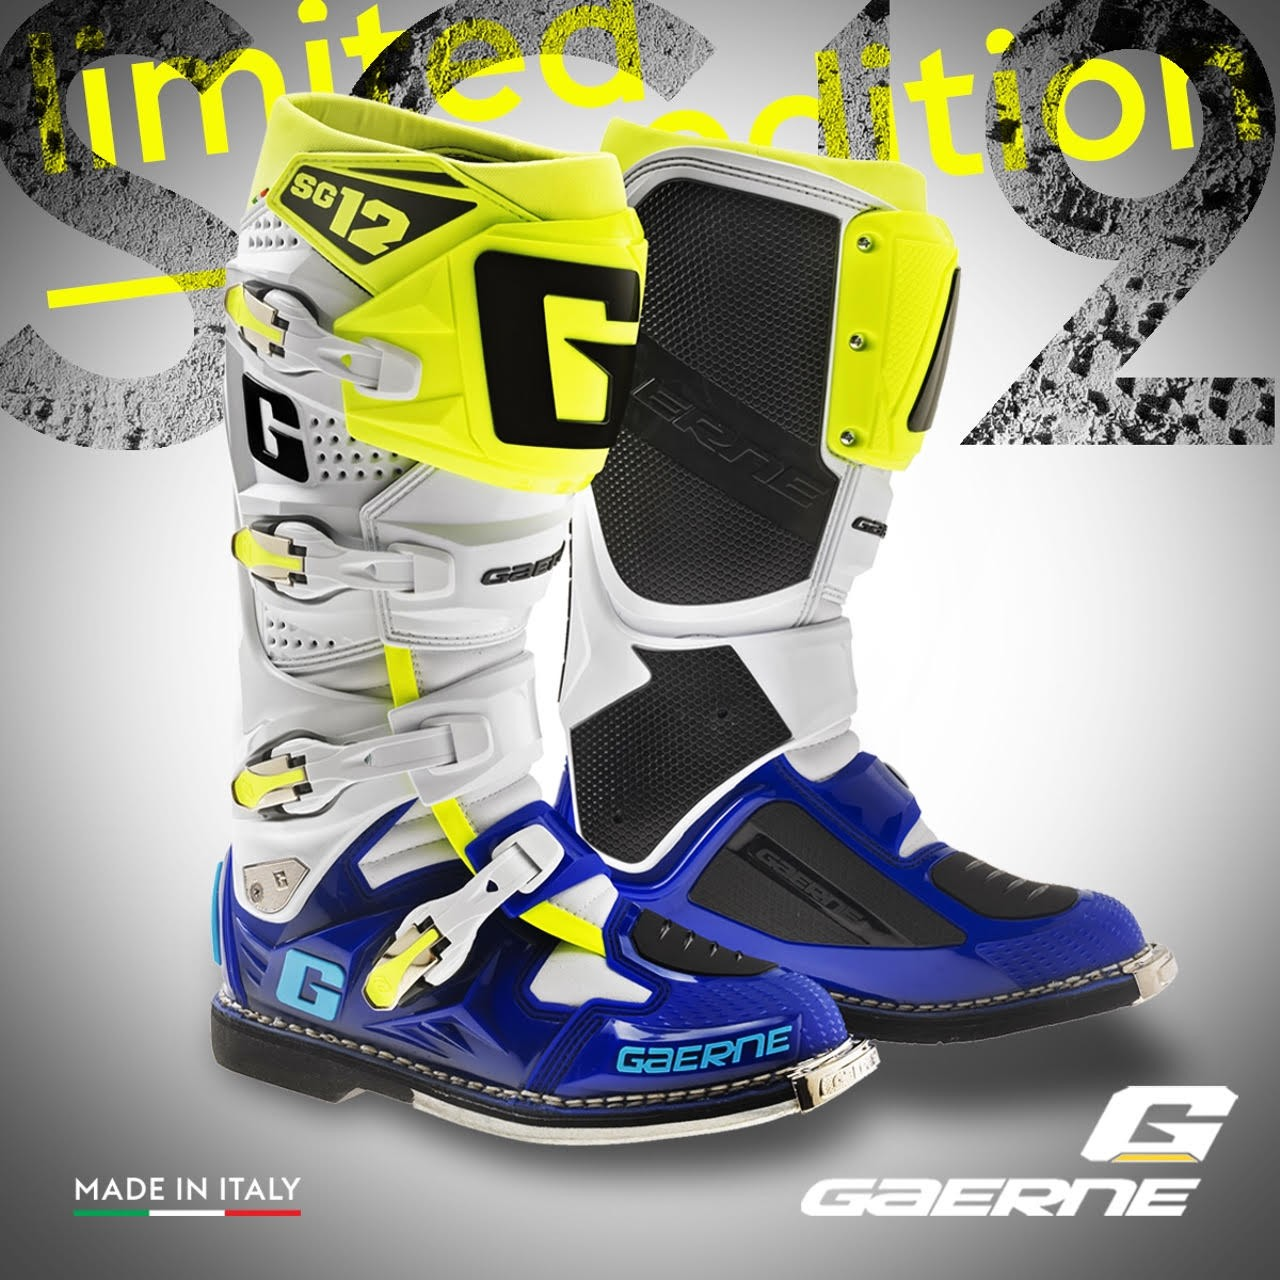 2016 Gaerne Limited Edition Sg12 Motocross Boots Blue White